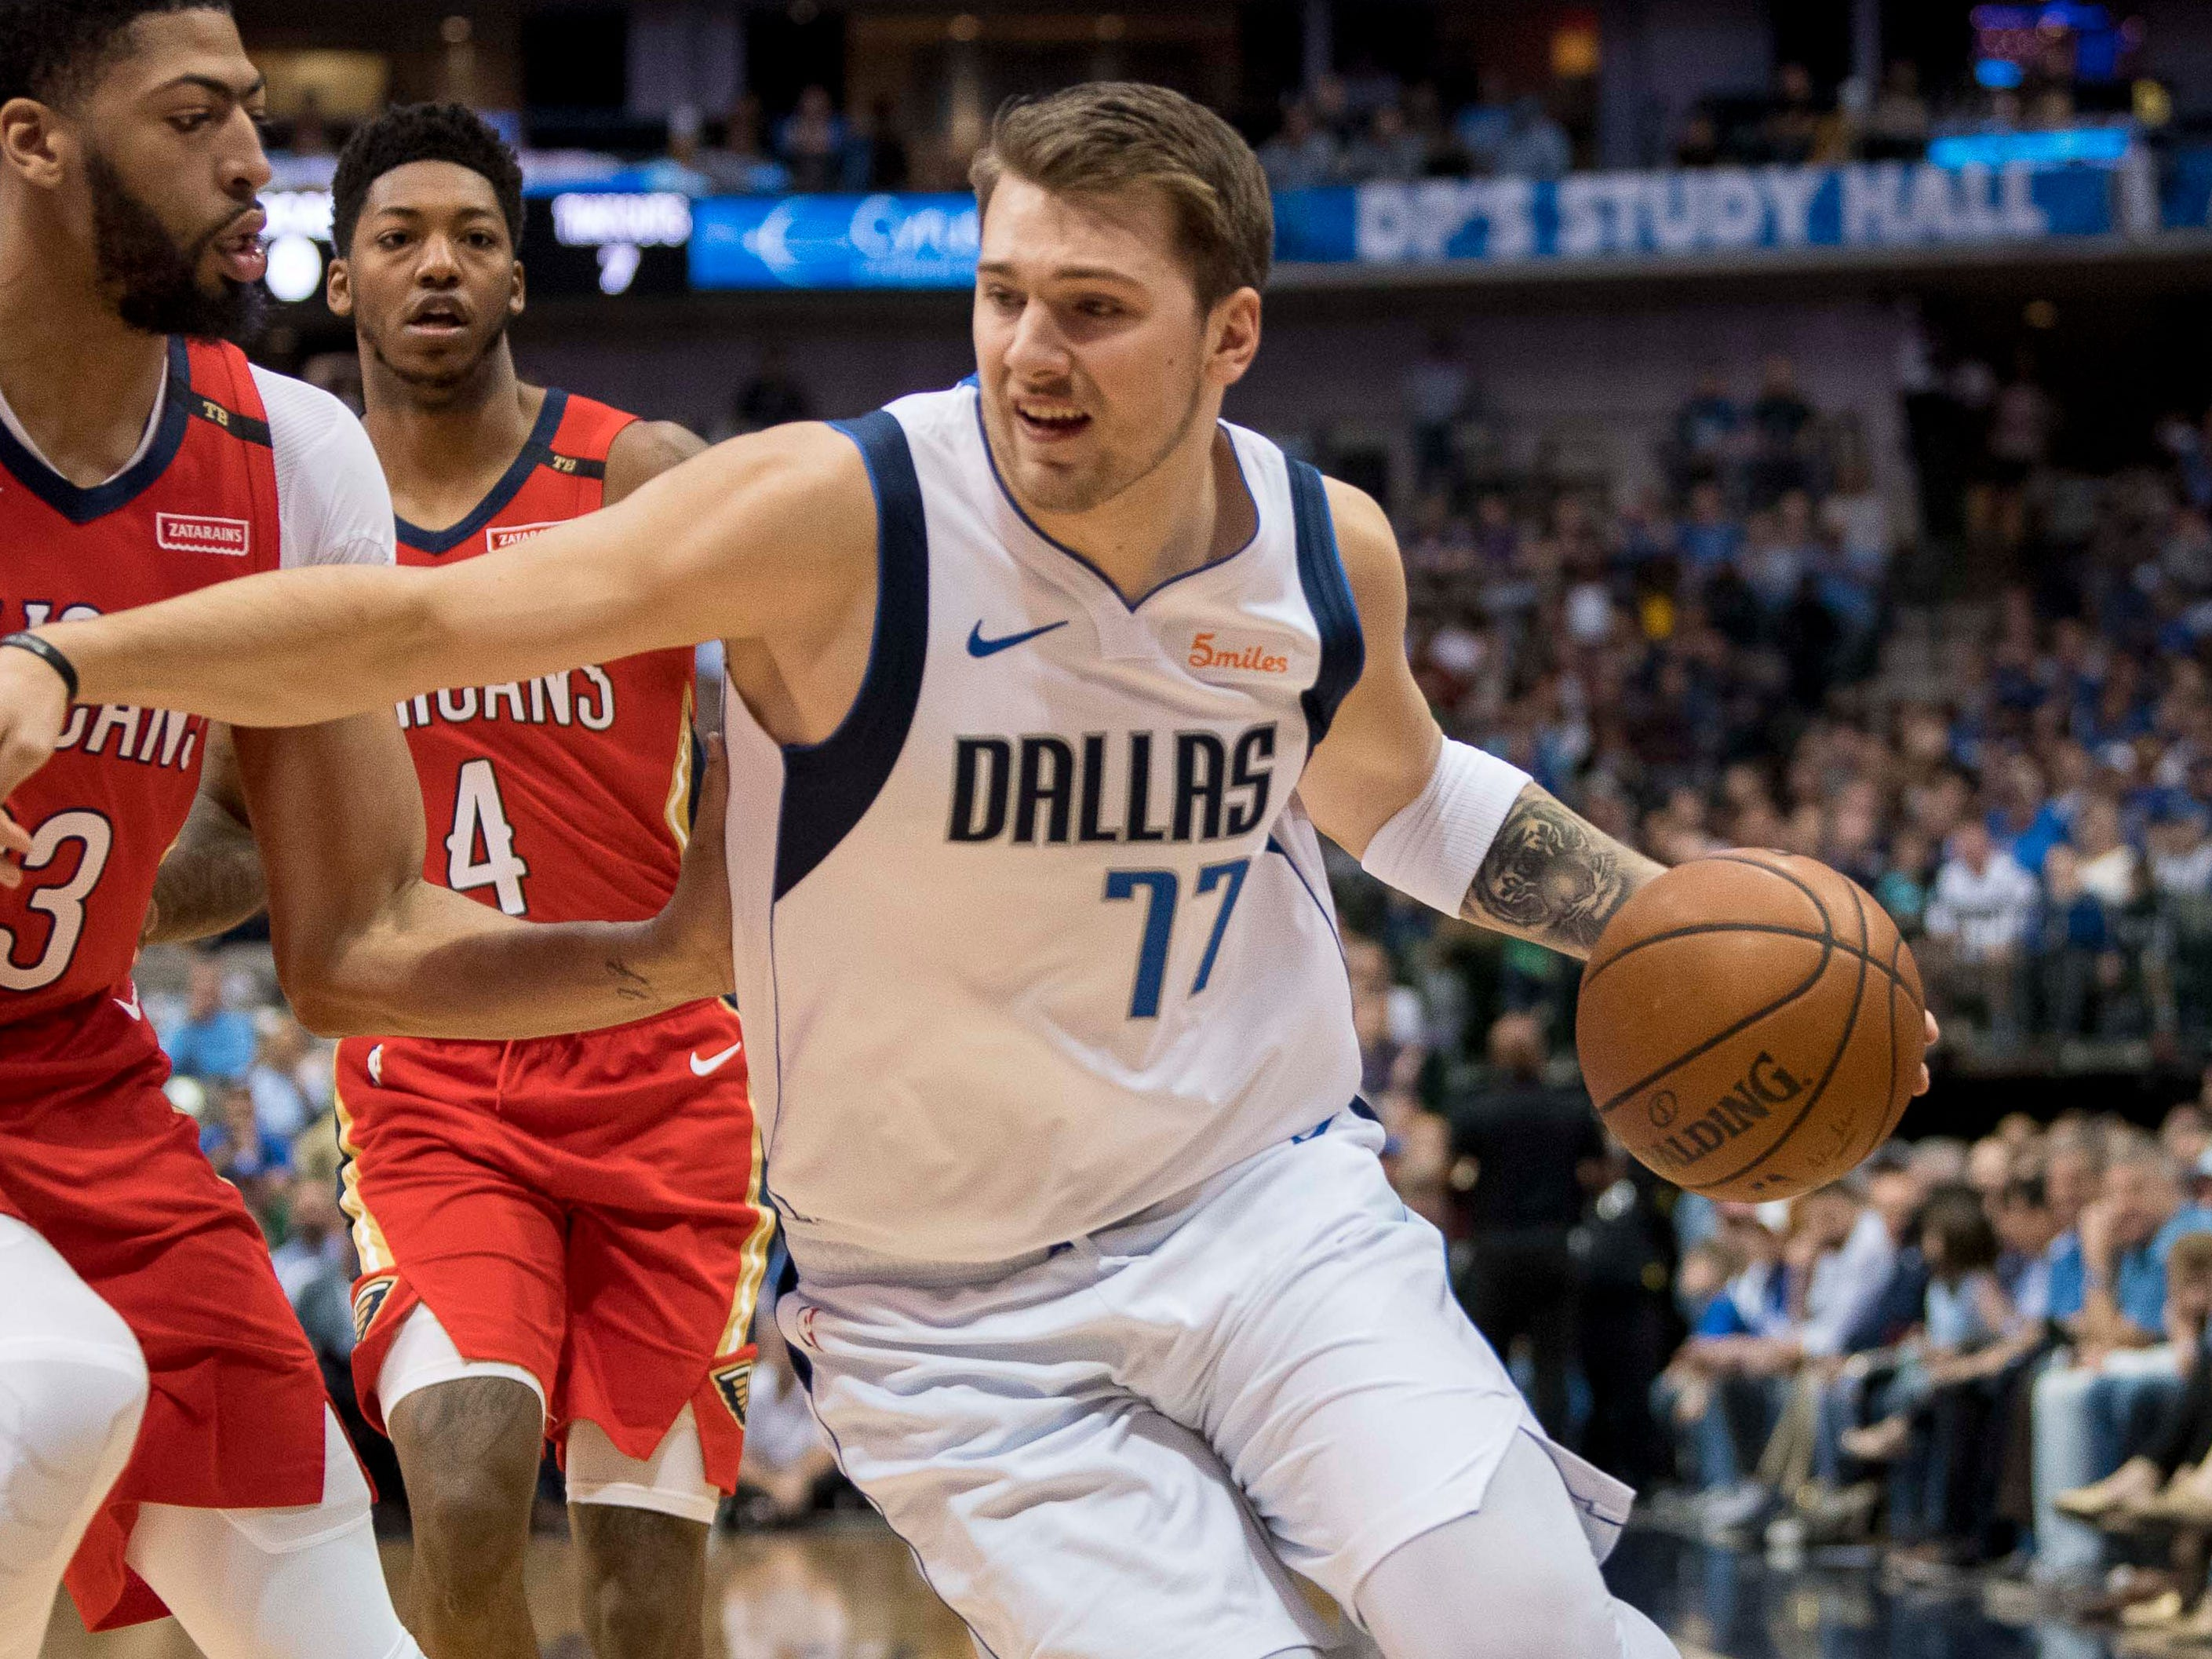 105. Luka Doncic, Mavericks (March 18): 29 points, 13 rebounds, 10 assists in 129-125 loss to Pelicans (fifth of season).